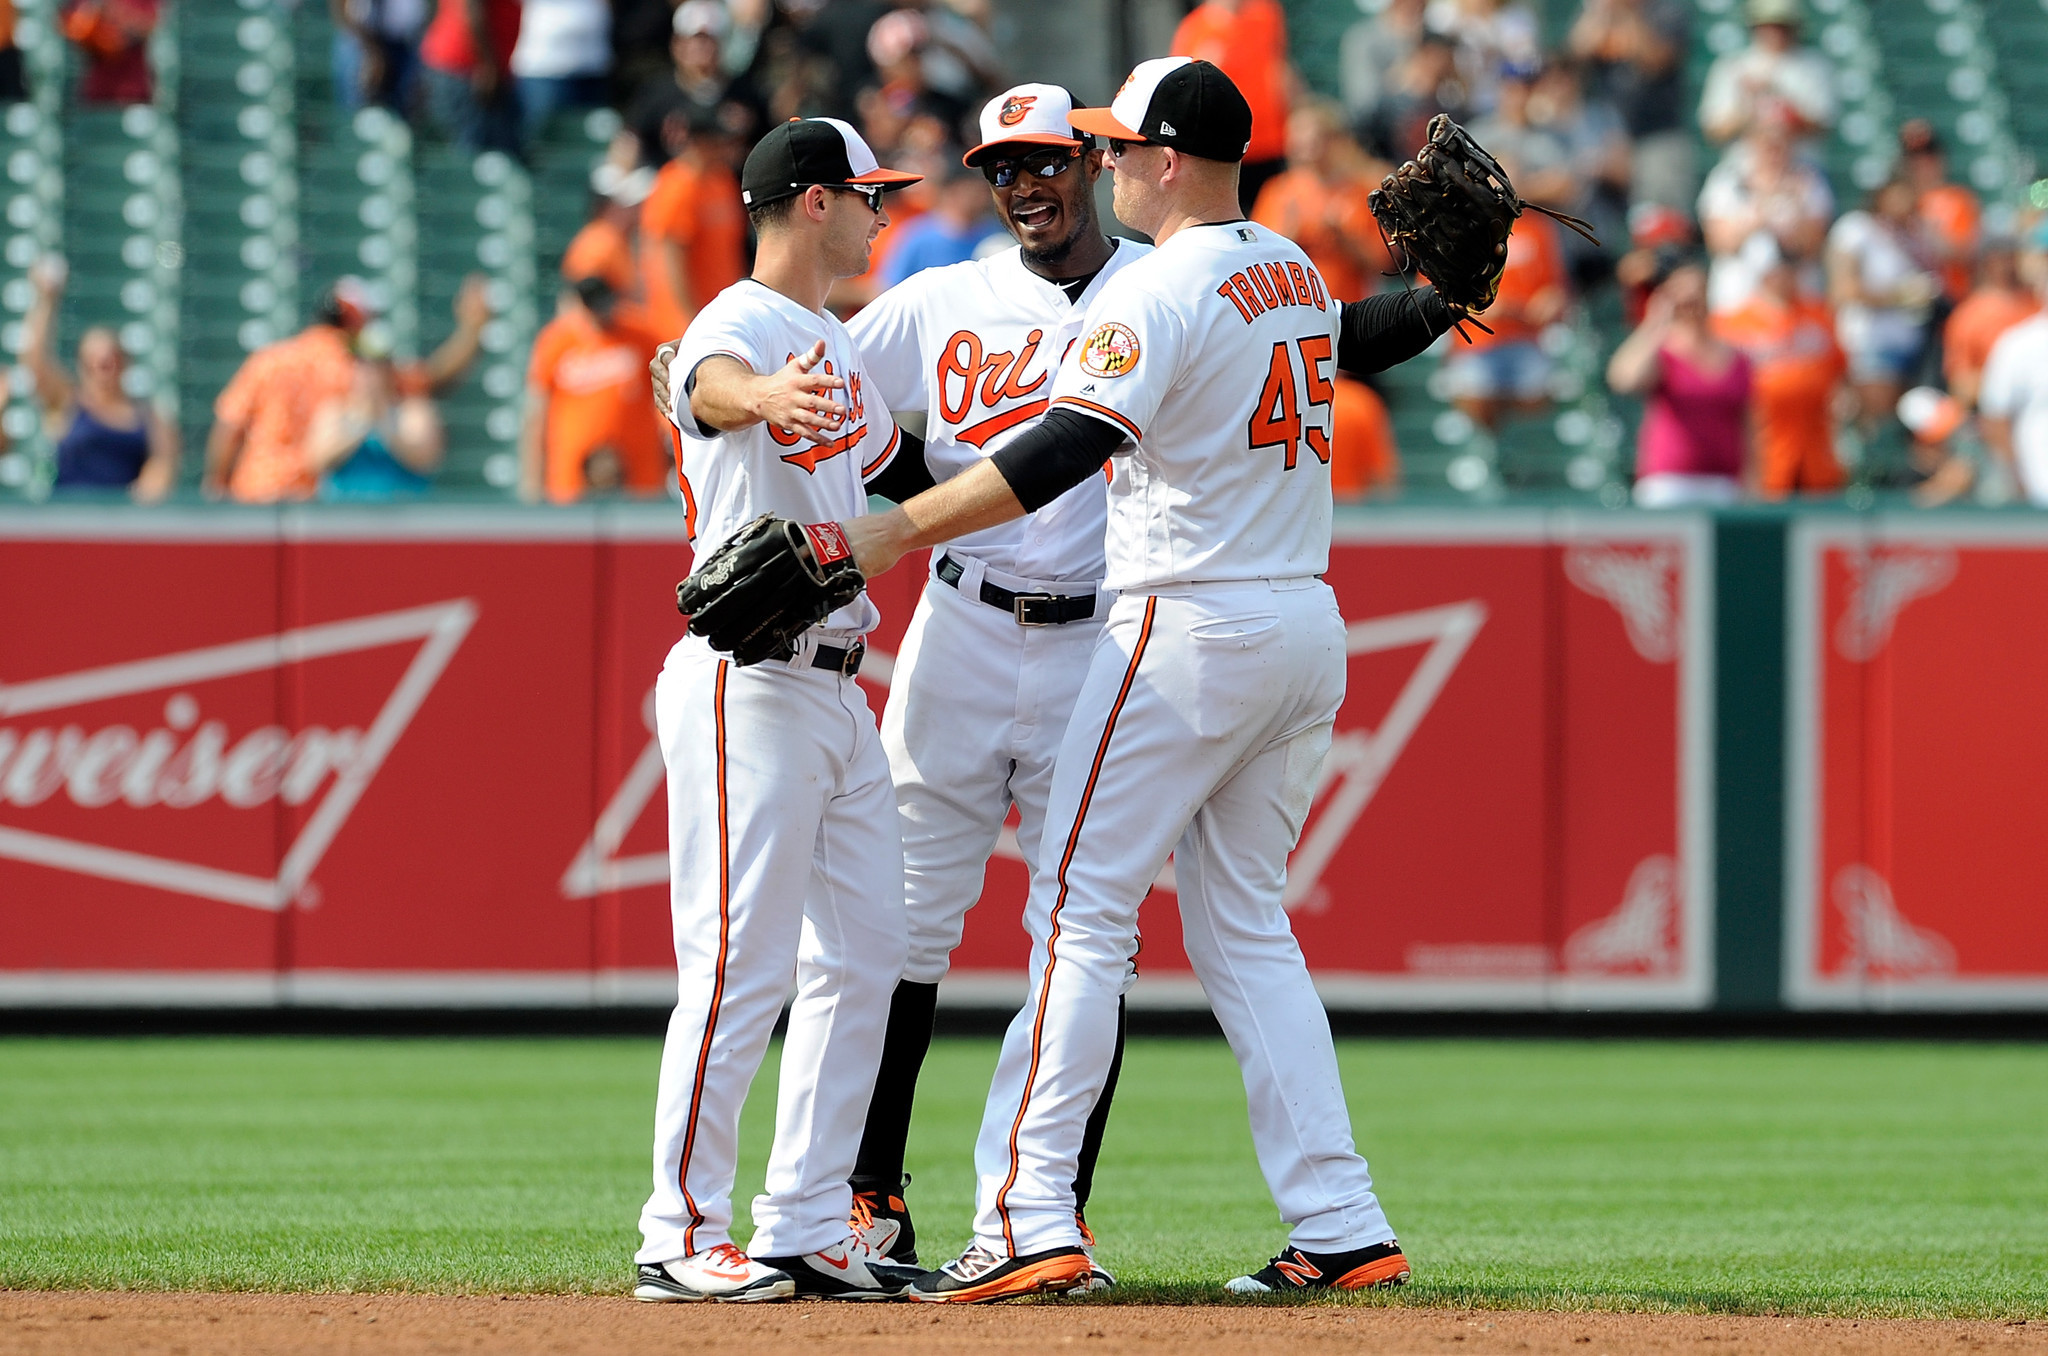 Bal-orioles-rewind-looking-back-at-sunday-s-6-5-win-over-the-rangers-20180715